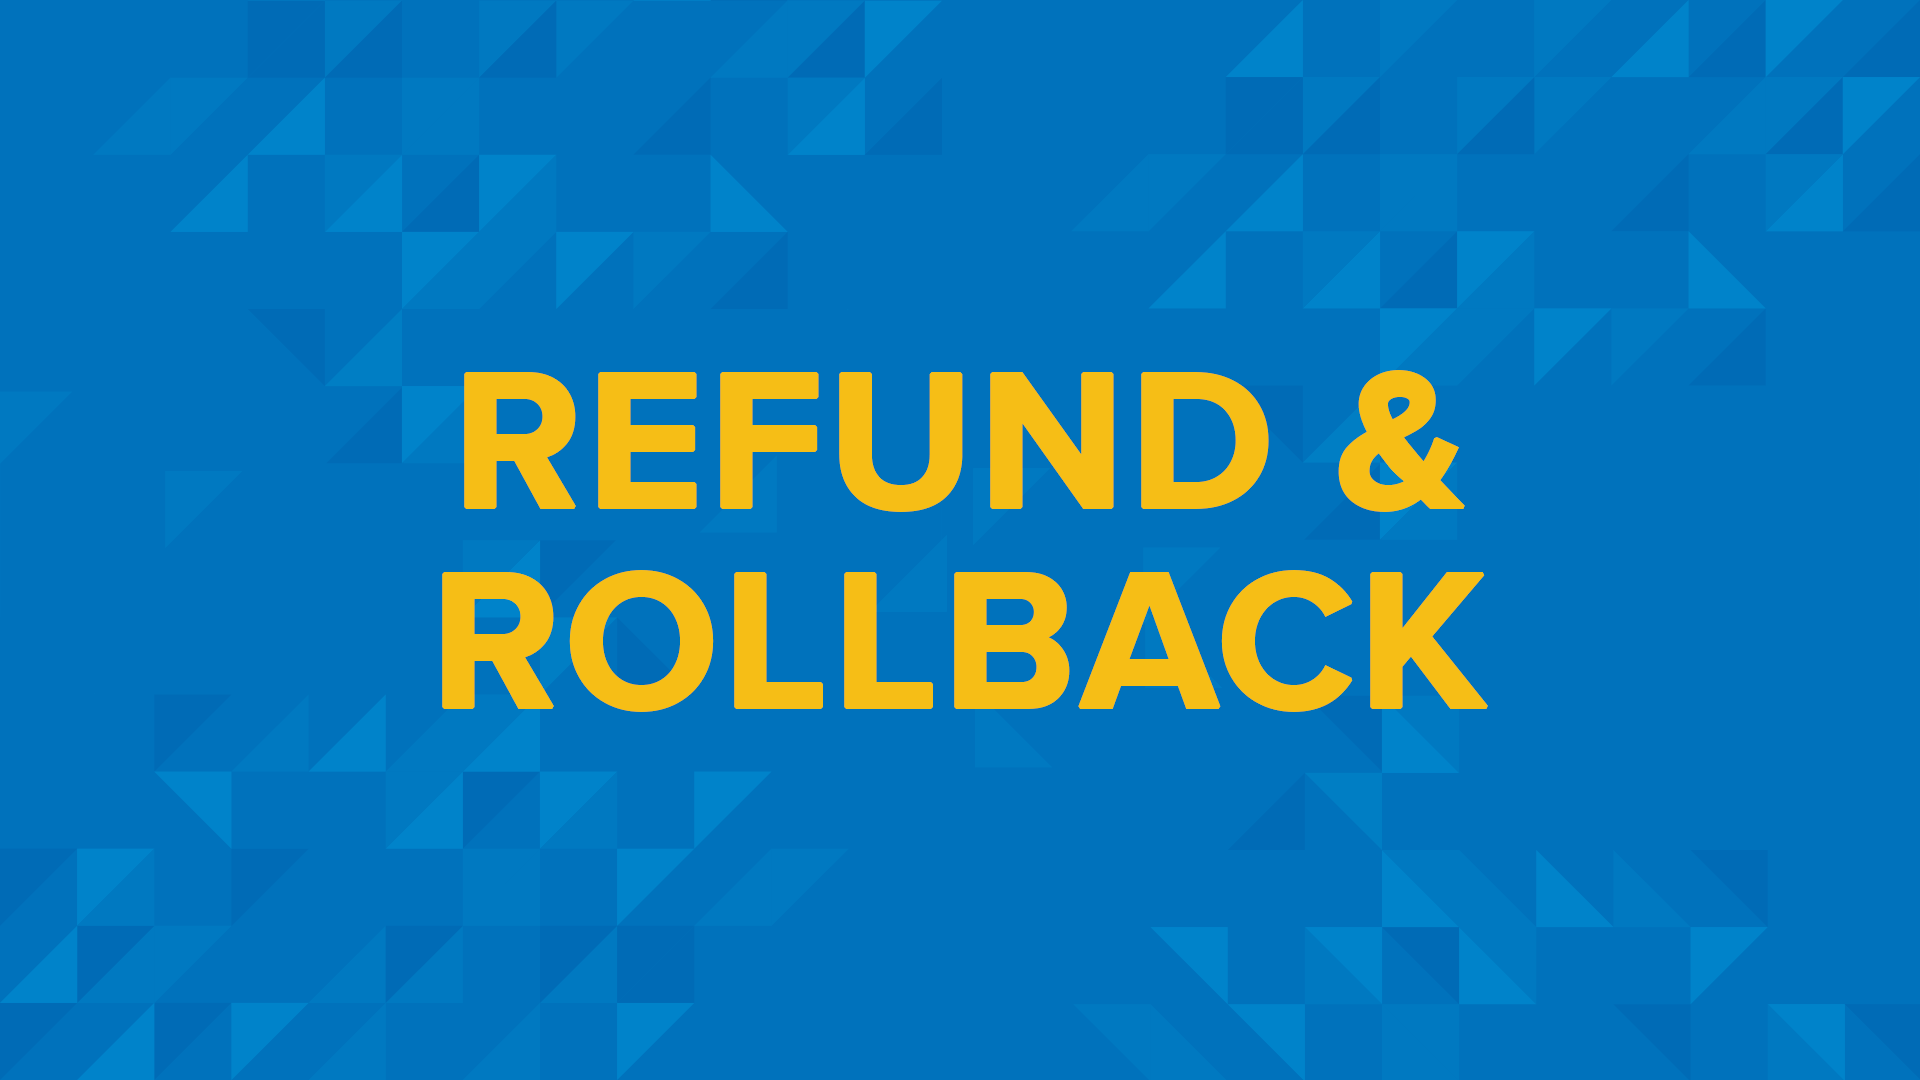 Refund & Rollback